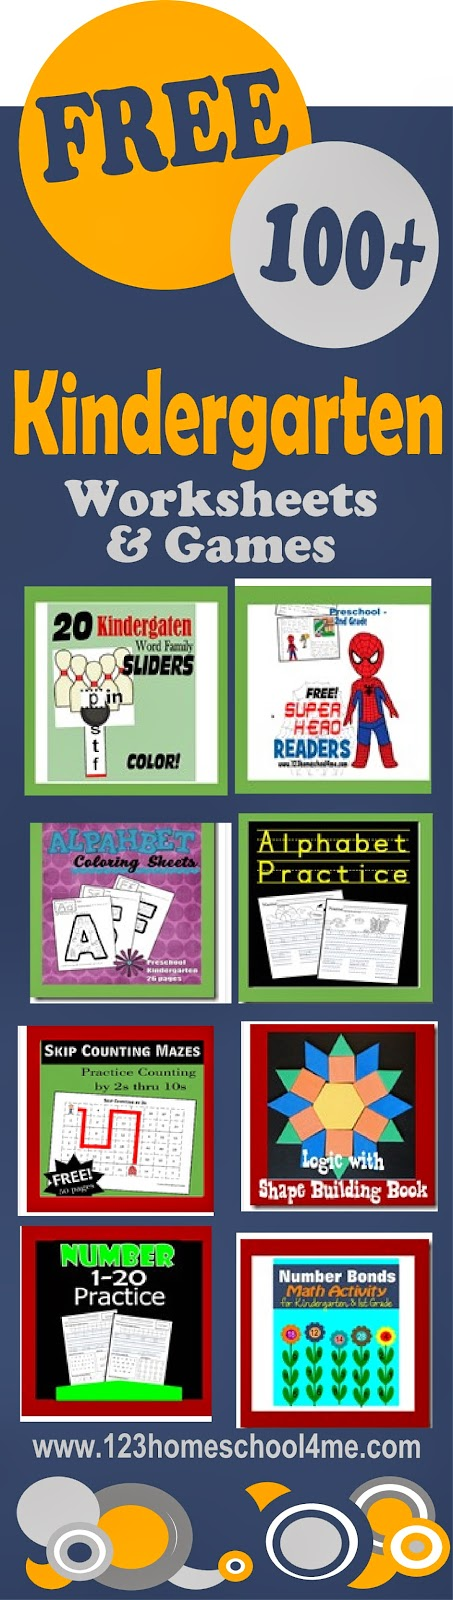 math worksheet : kindergarten worksheets 100s free  : Free Kindergarten Worksheets Online